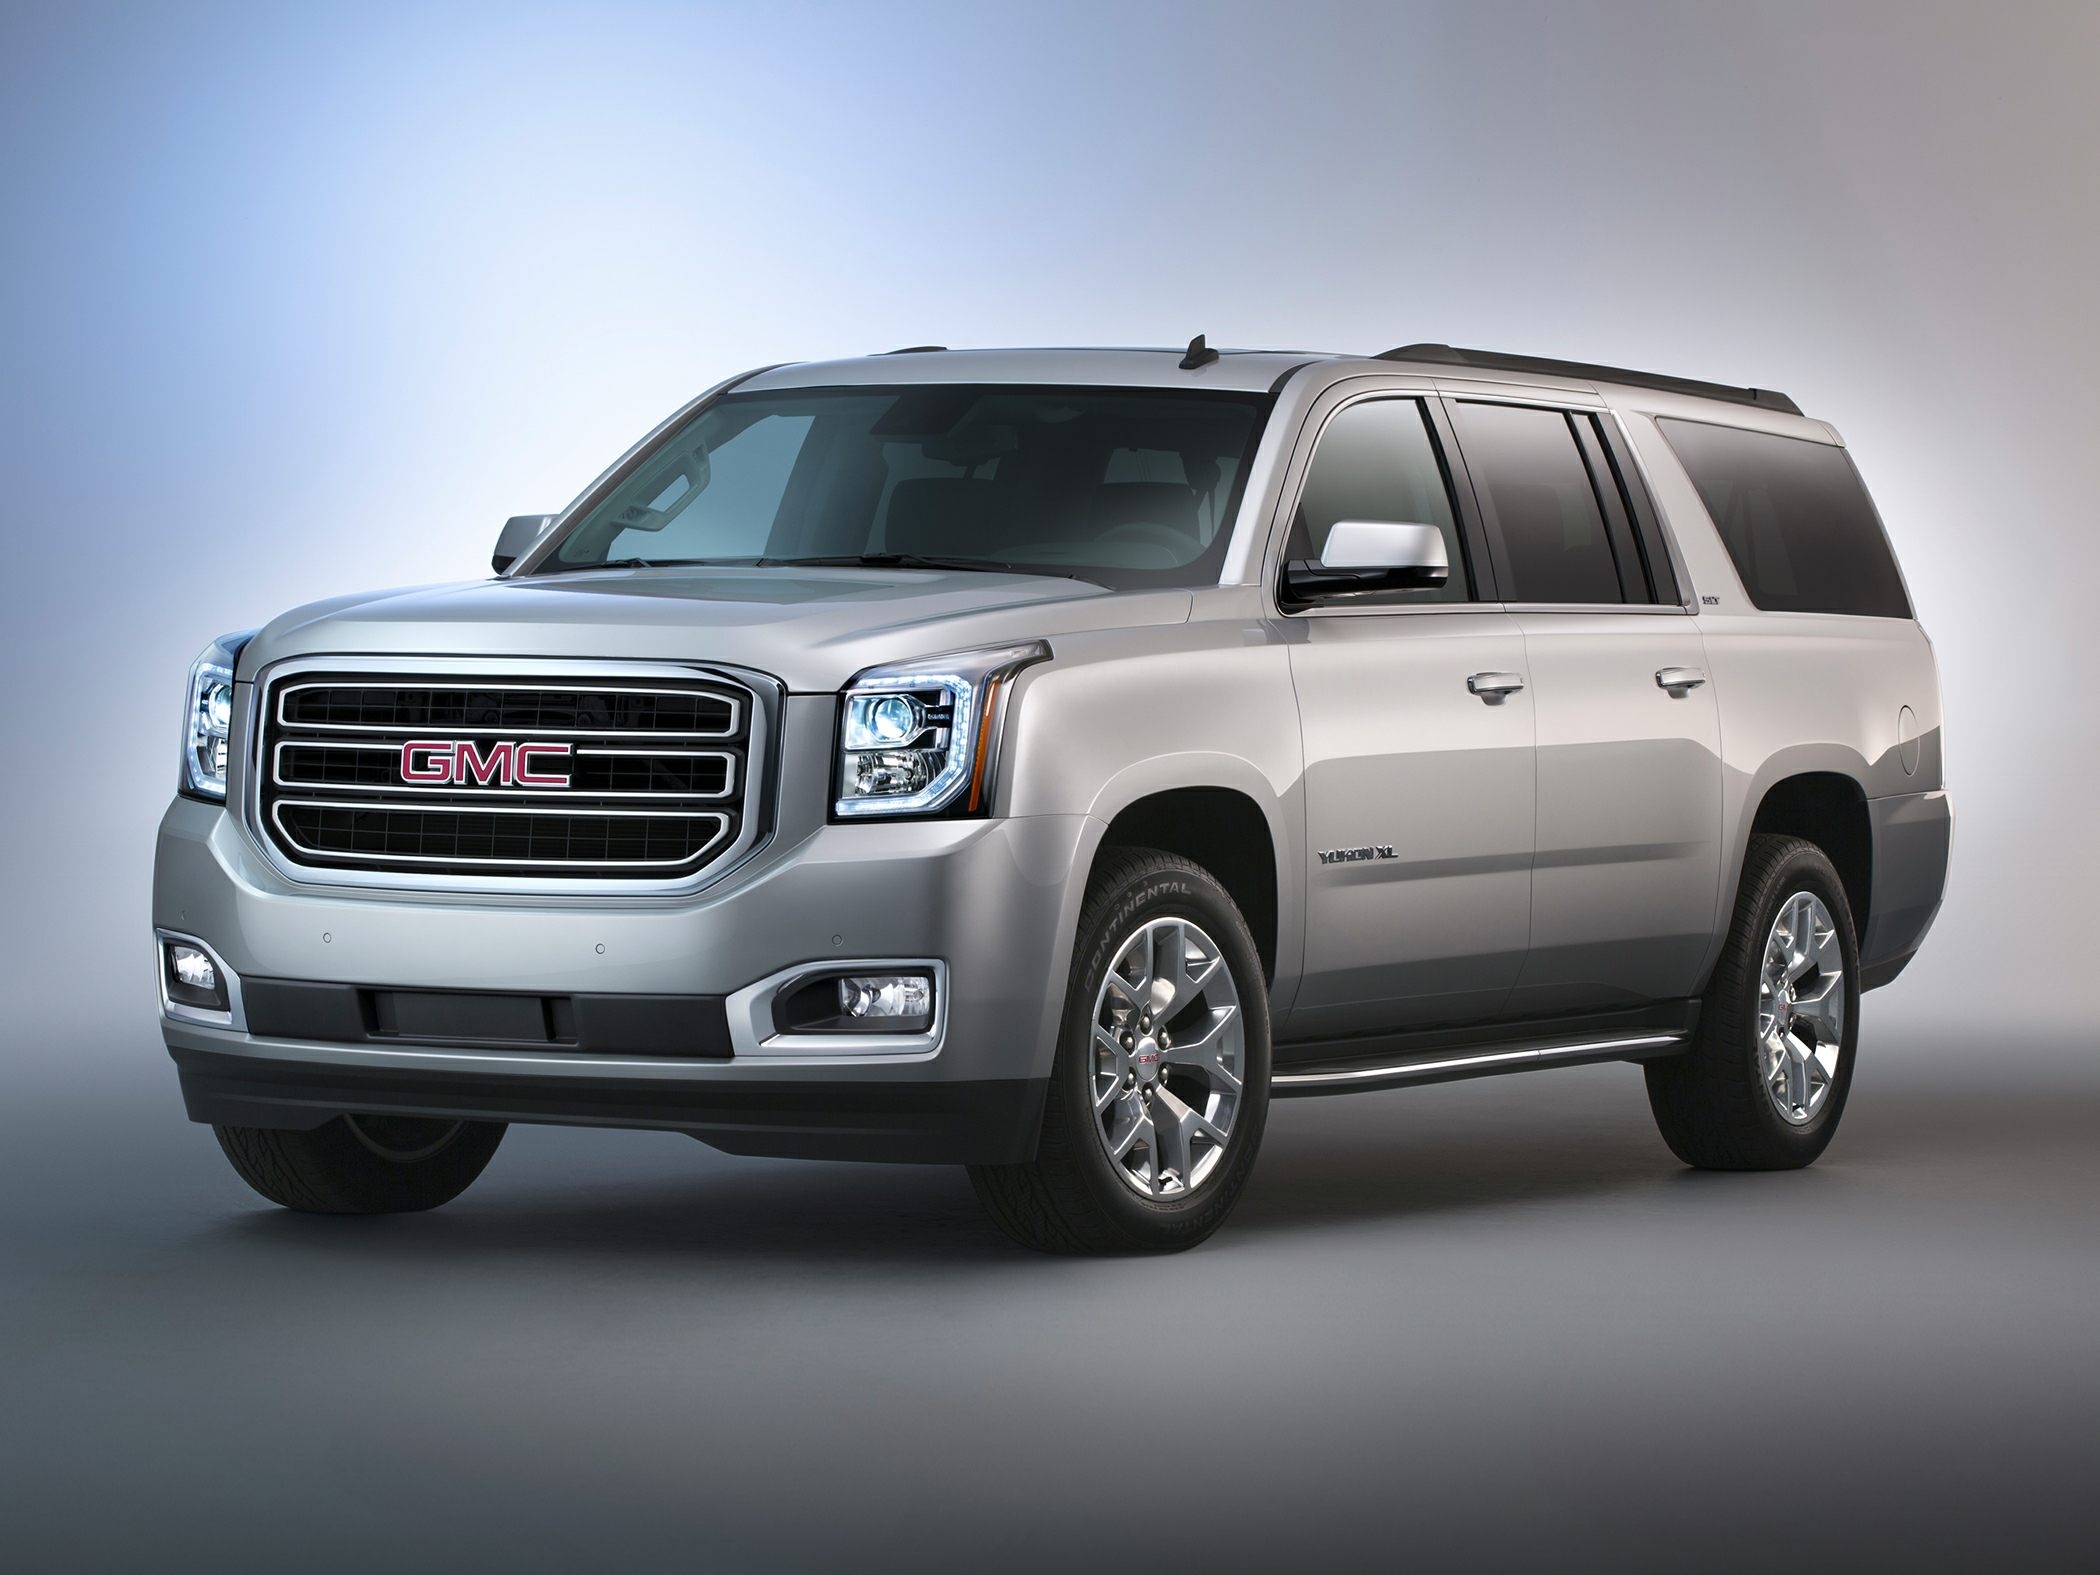 2015 GMC Yukon XL Glam